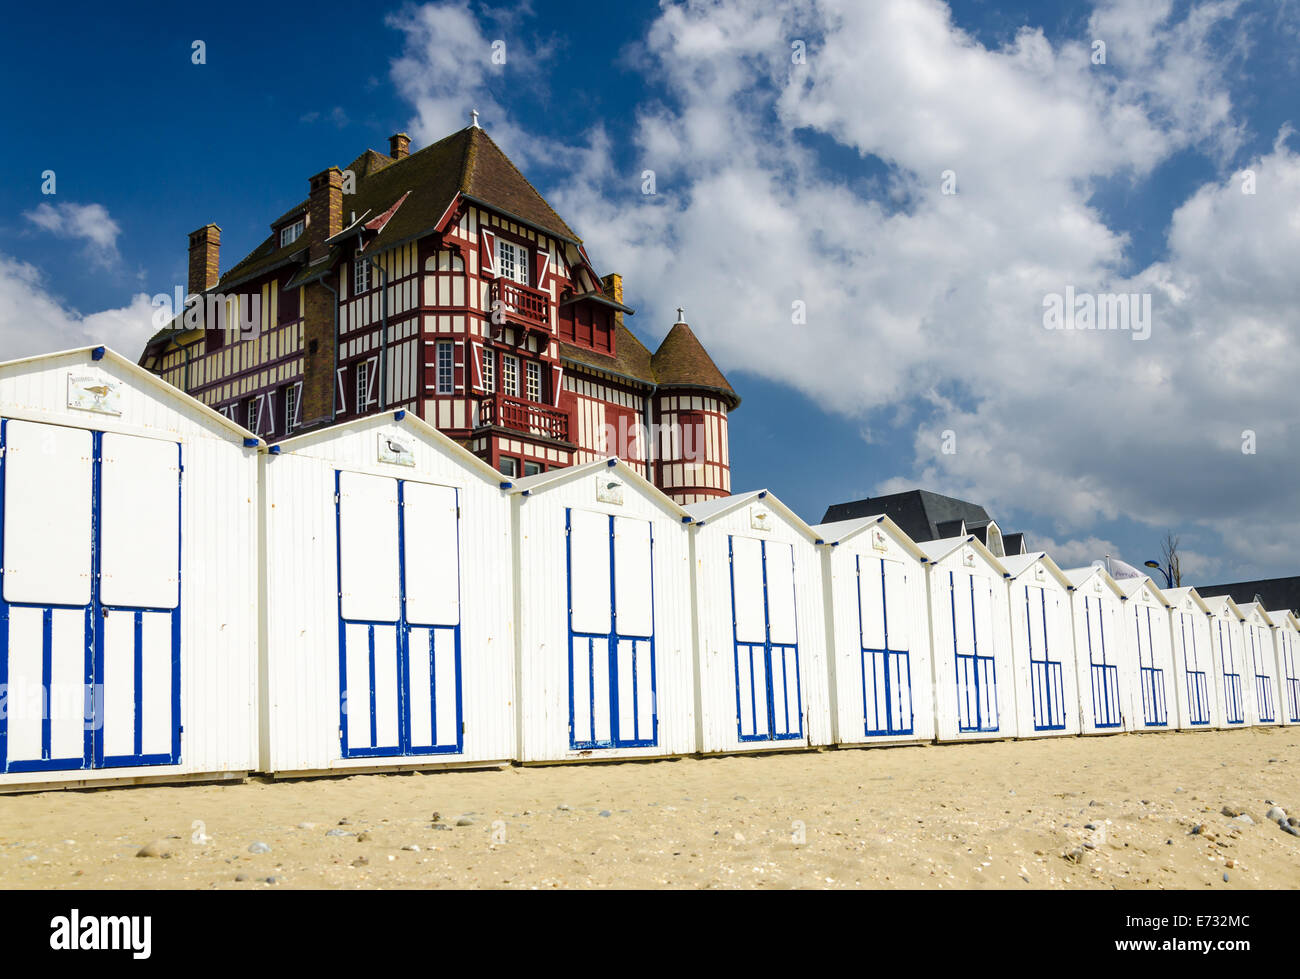 White Beach Cabins In A Row On French Coast With A Beautiful